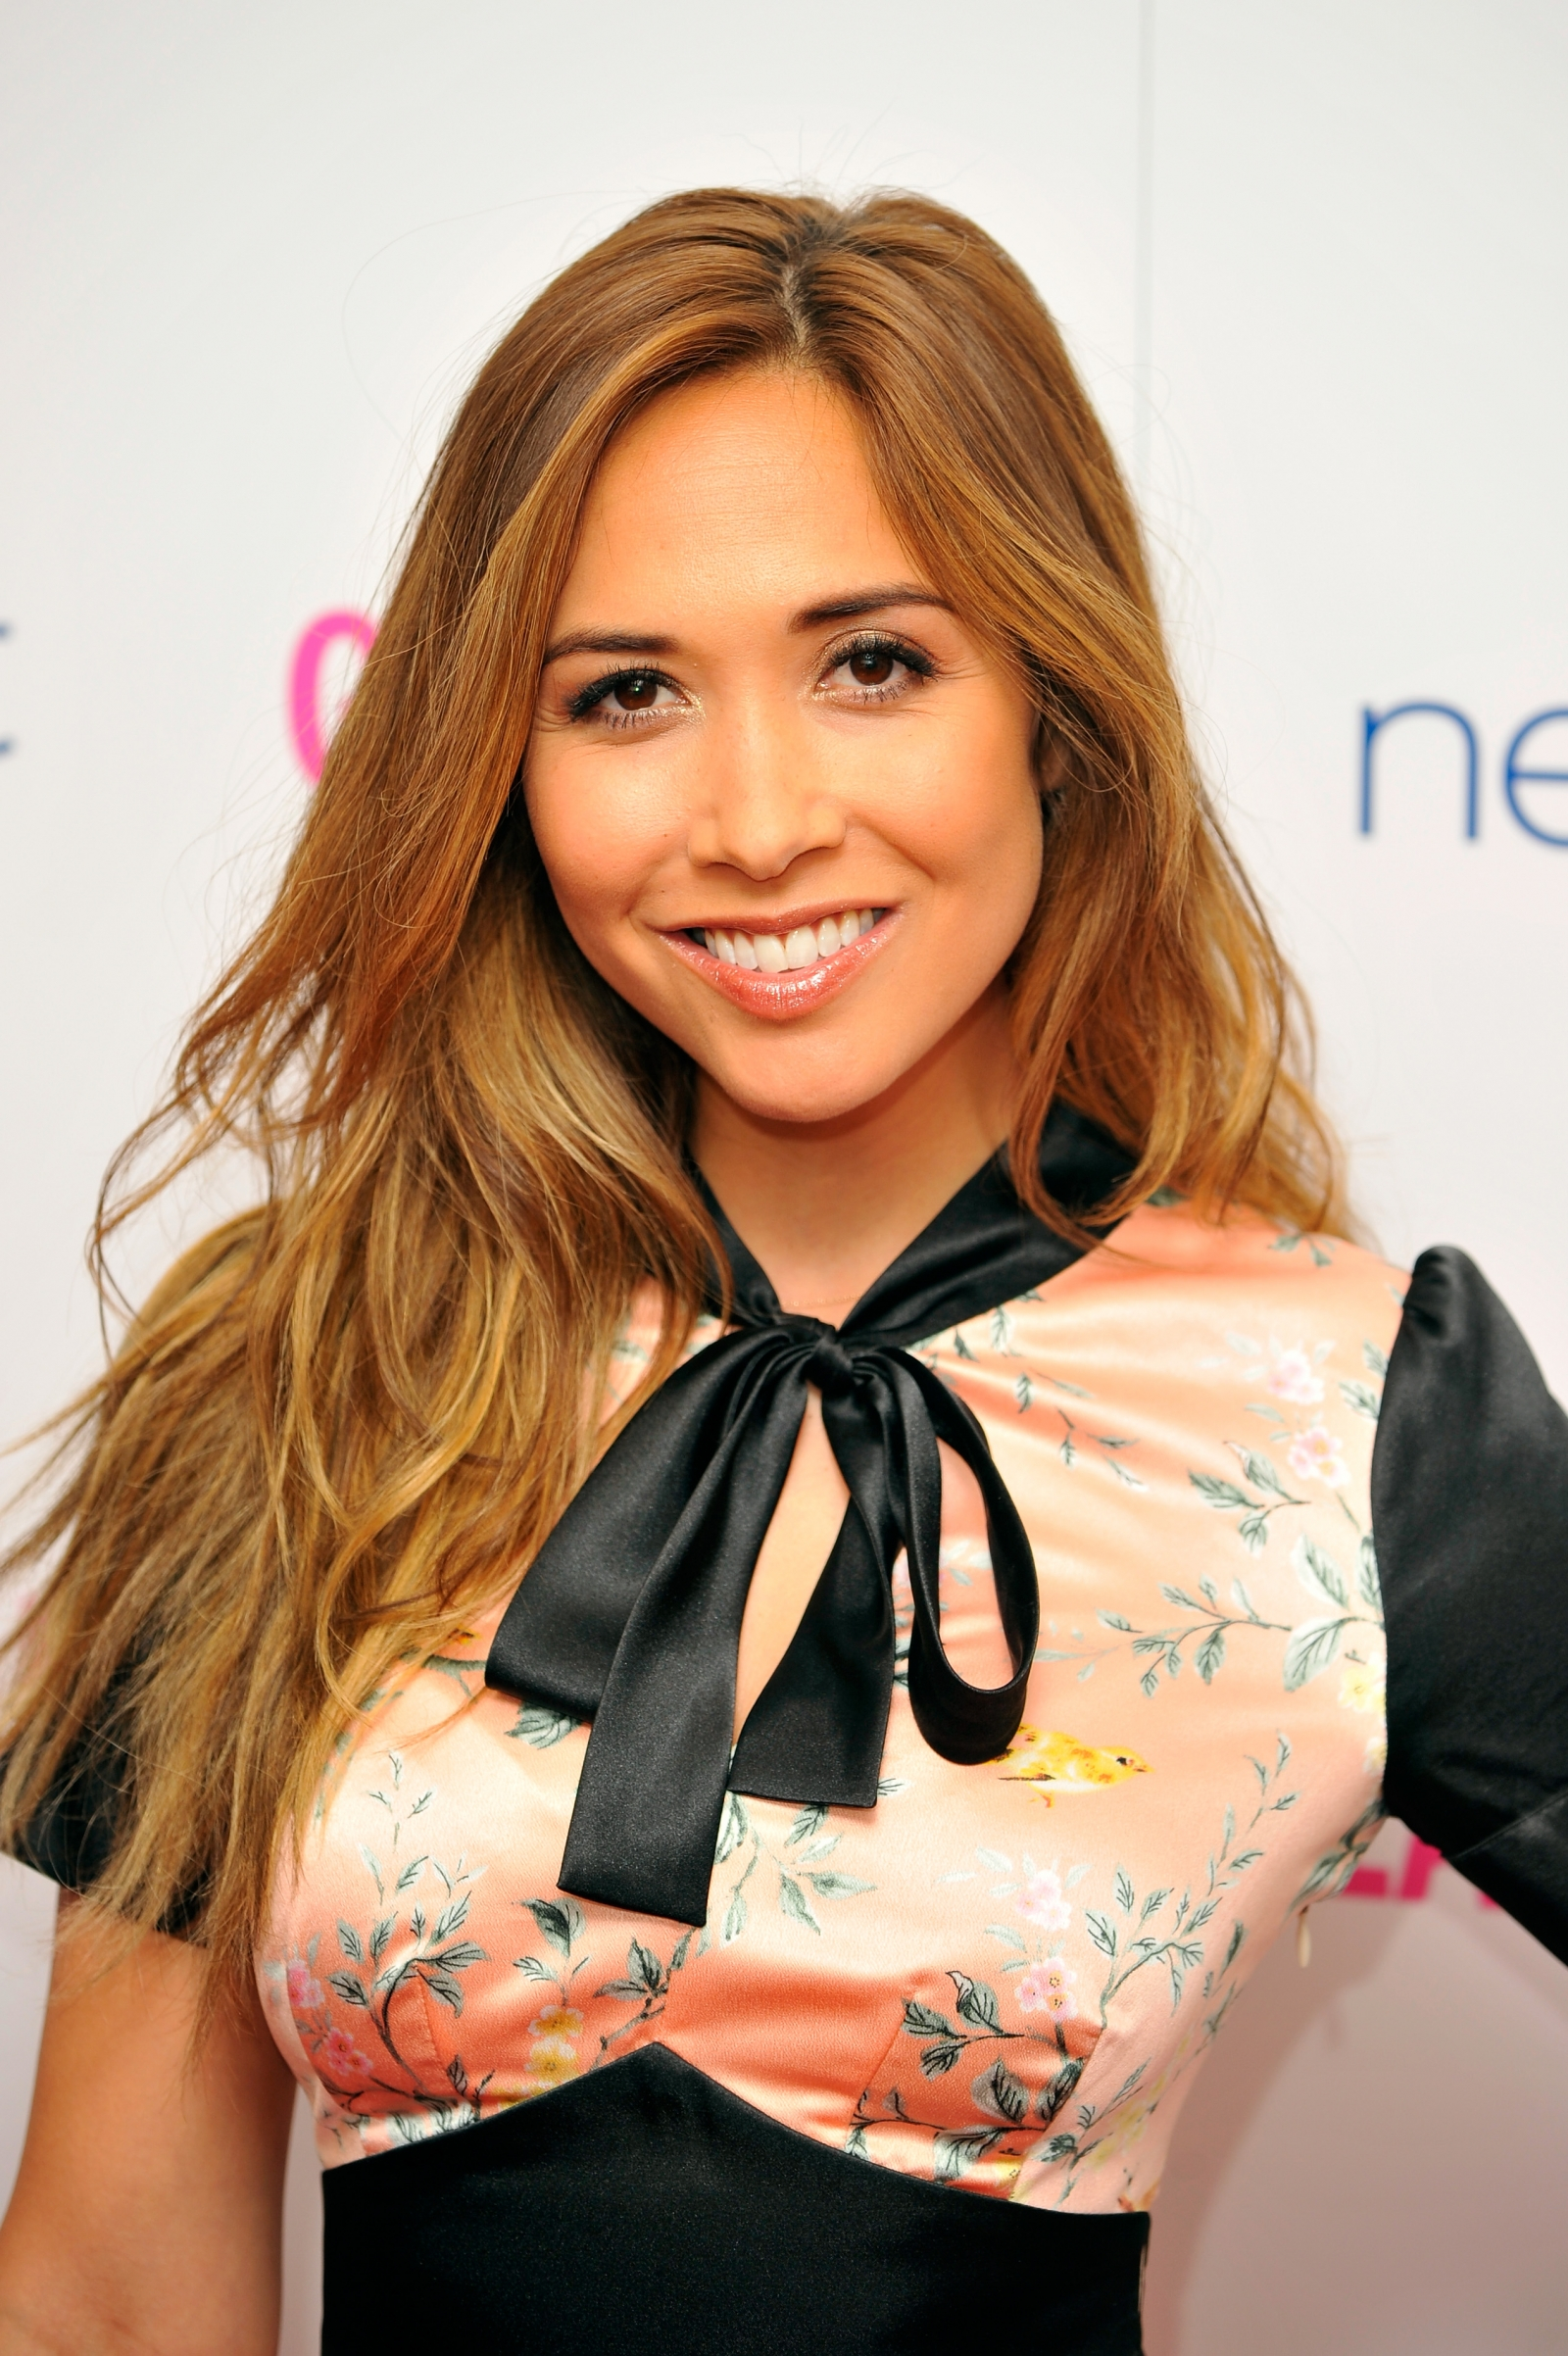 Myleene Klass Cuts Hair Into Long Bob Kim Kardashian Jennifer